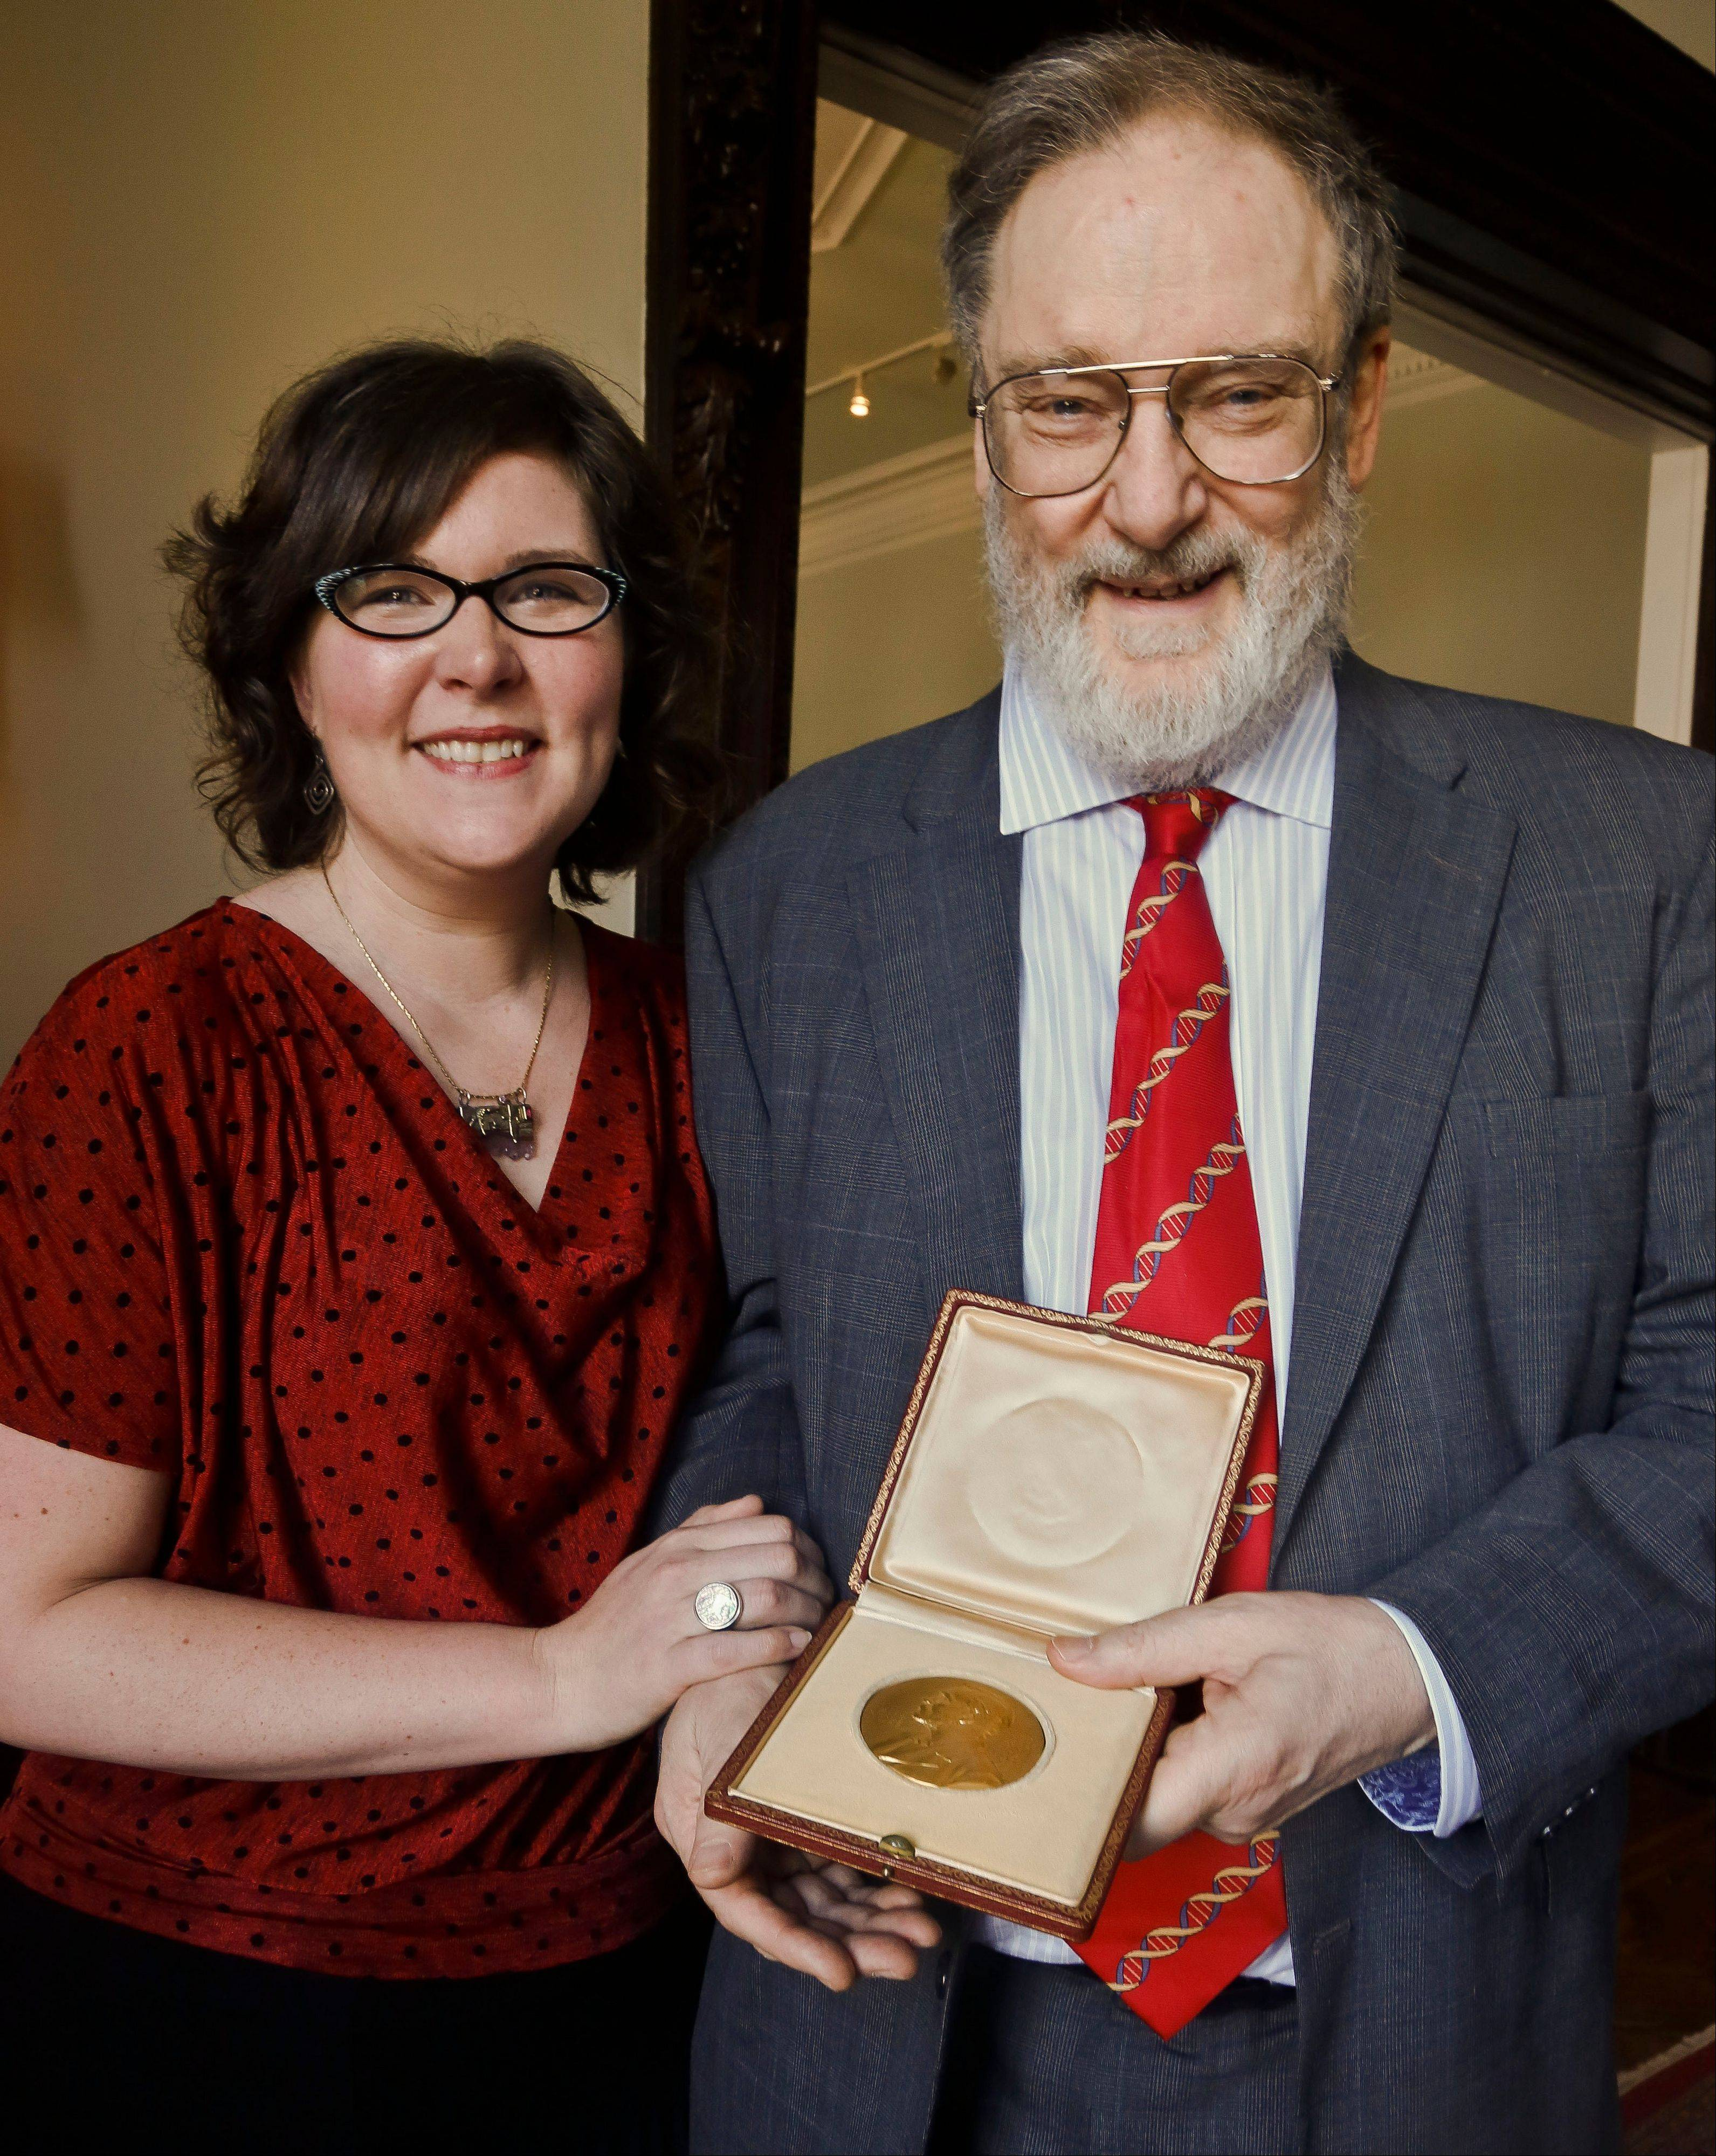 Kendra Crick poses with her father Michael Crick as he holds the 1962 Nobel Prize for Medicine awarded to his father, molecular biologist Dr. Francis Harry Compton Crick. Francis Crick helped decipher the DNA molecule.